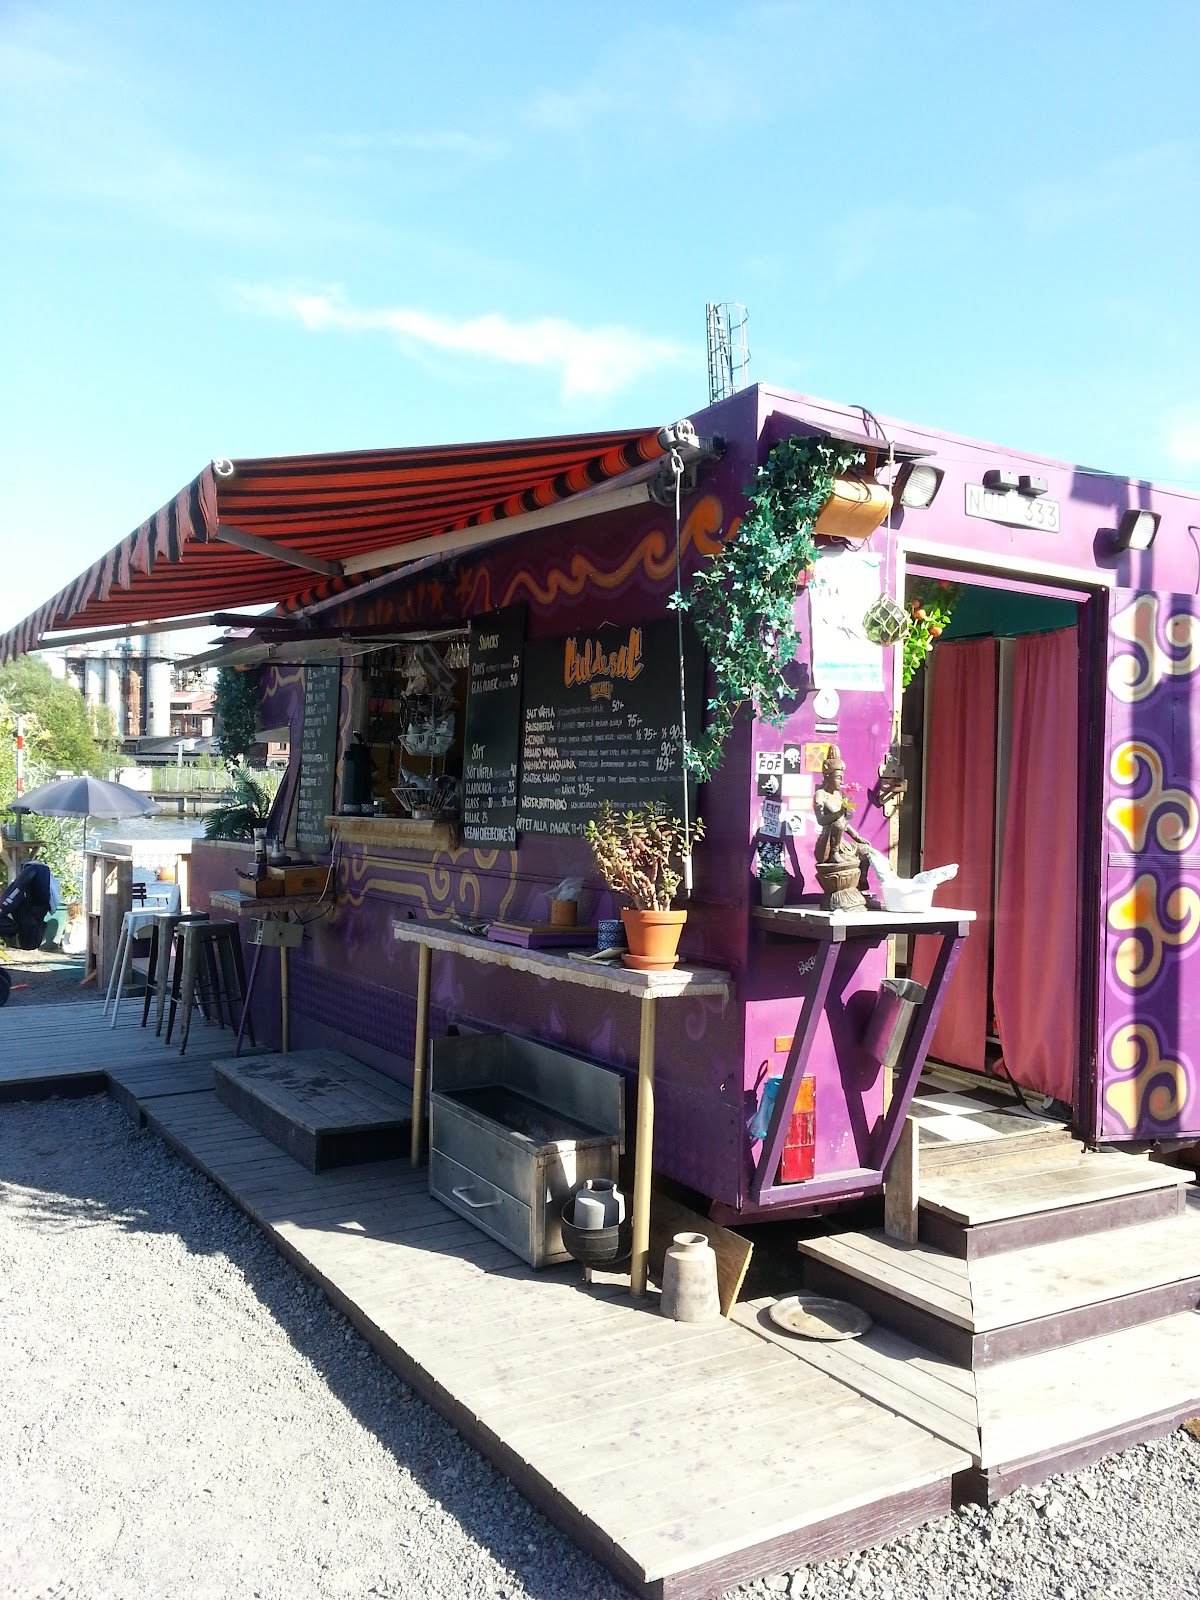 The image shows the café - a purple trailer with two steps up to the window for ordering. Menus are displayed at the front.